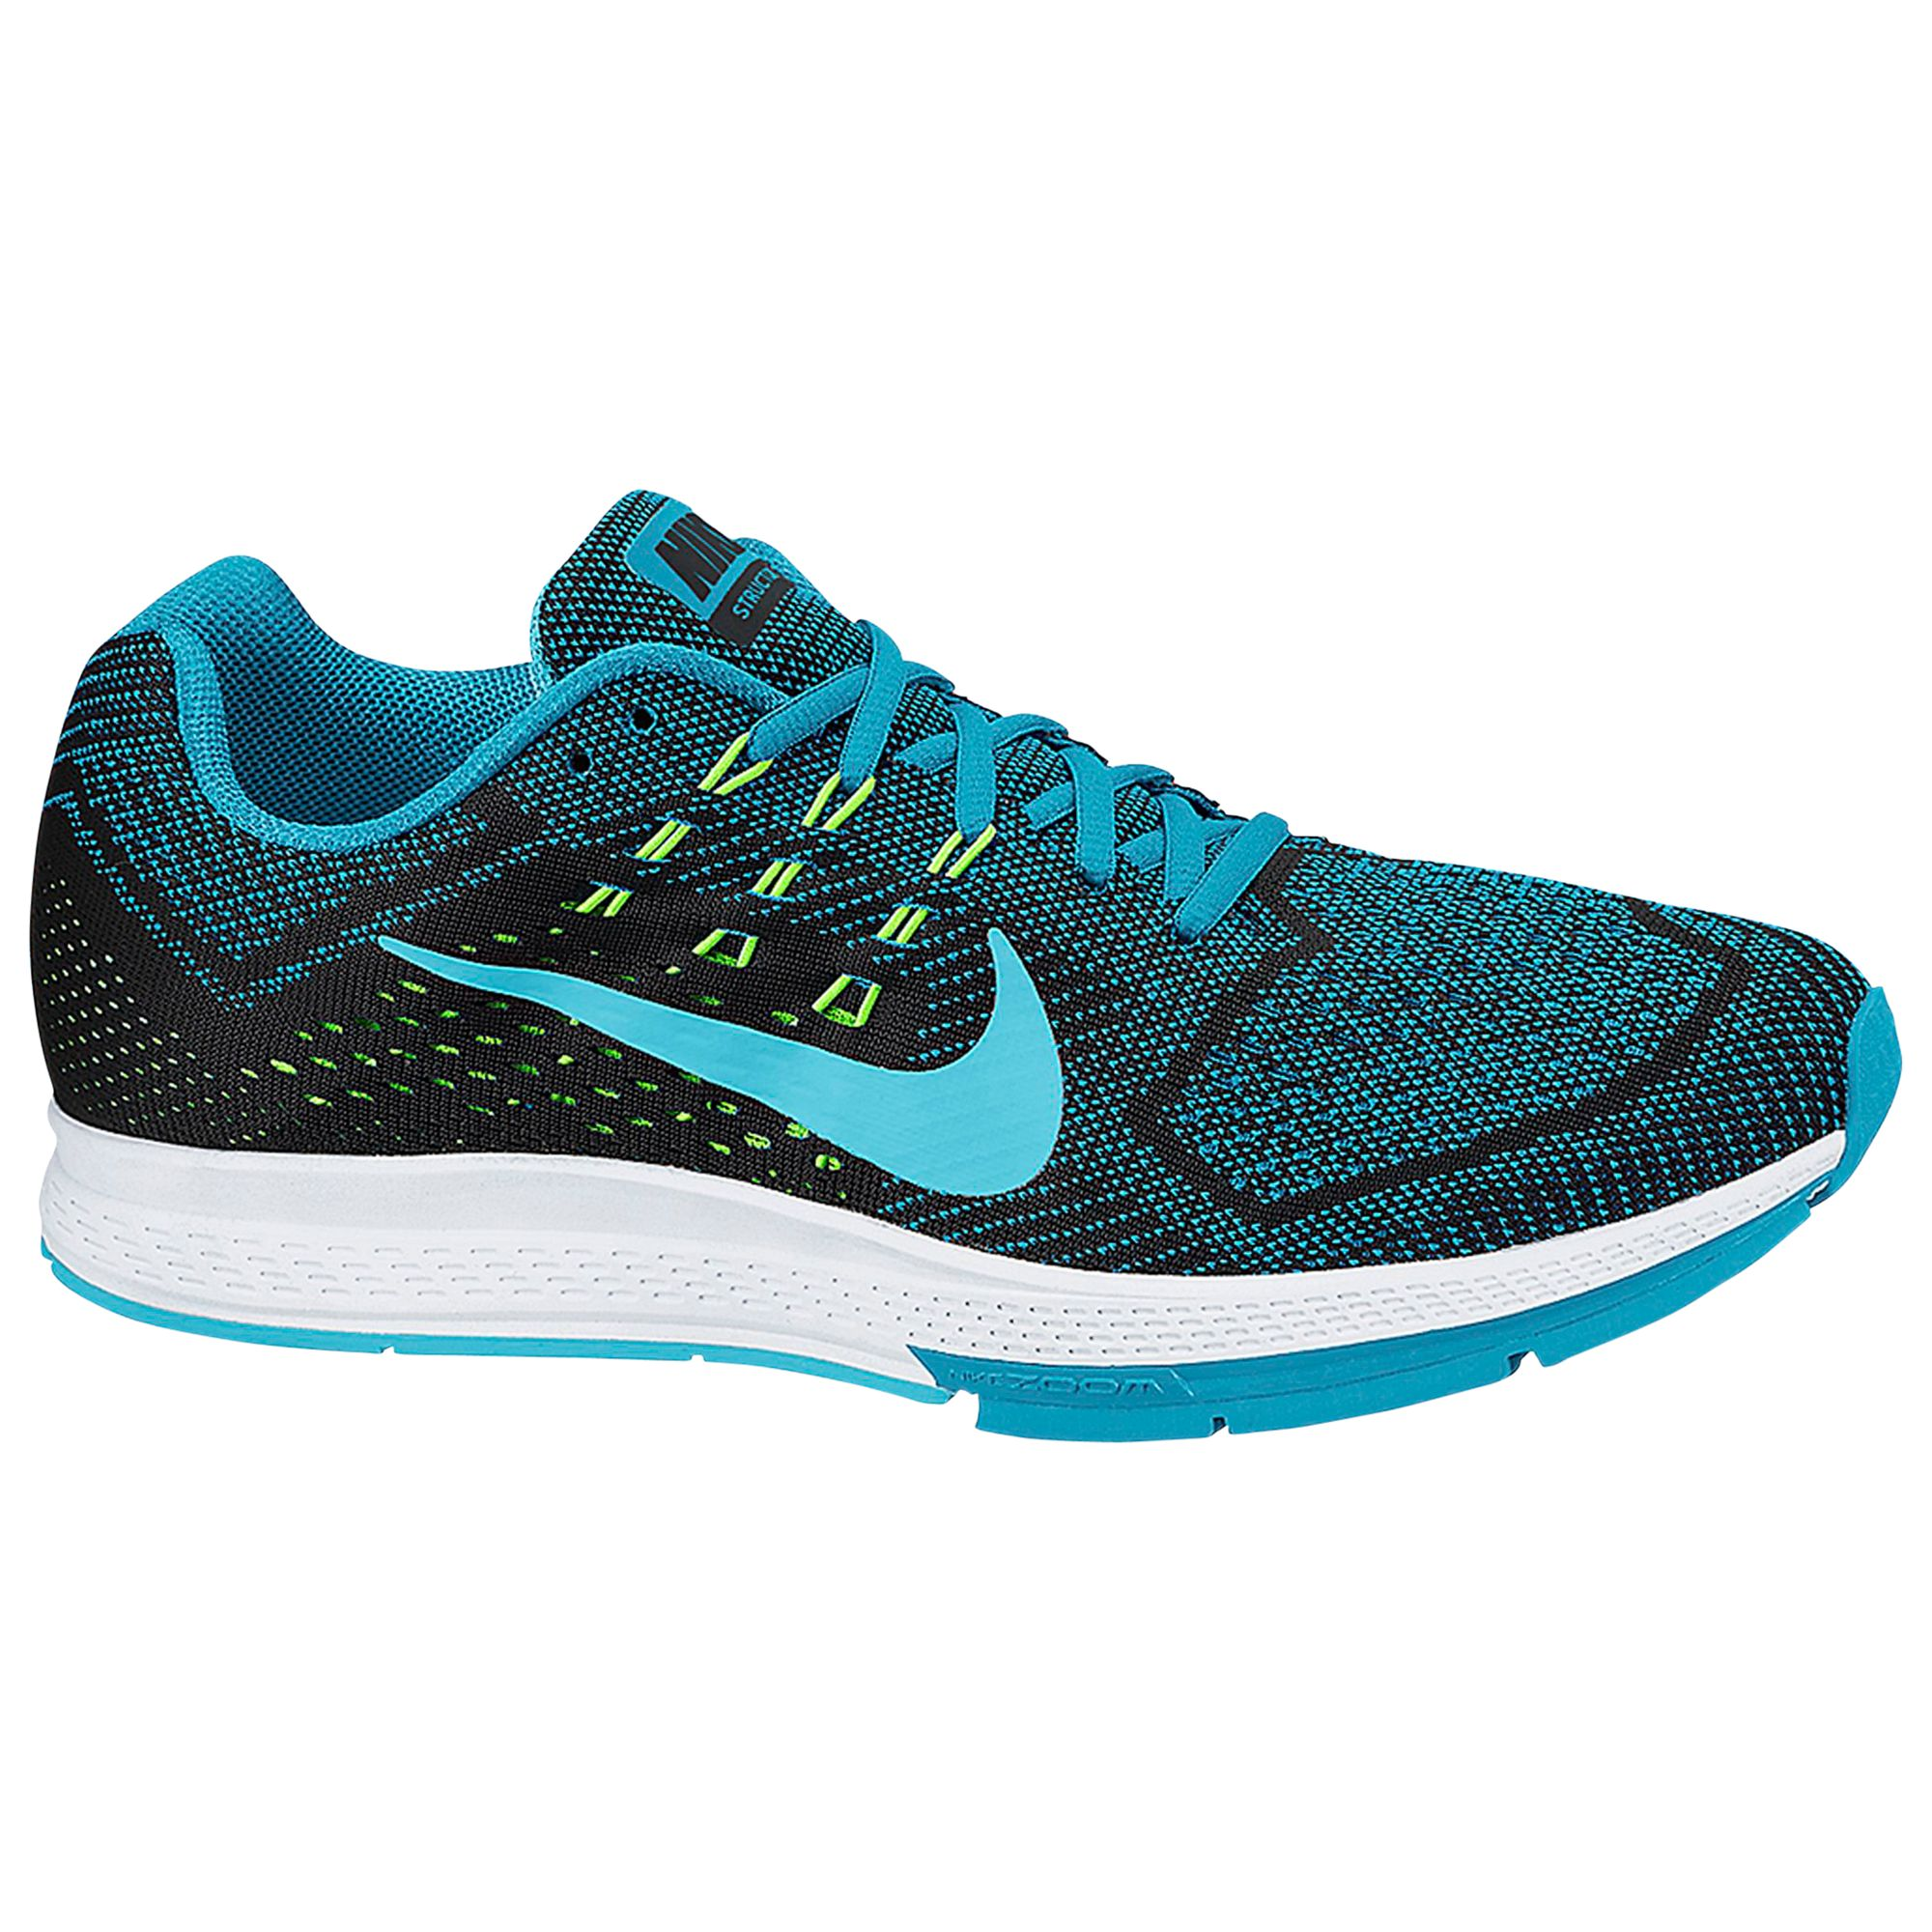 preschool nike air zoom structure 18 Nike Air Zoom Structure 18 Men's Running Shoes, Blue/Black at John ...